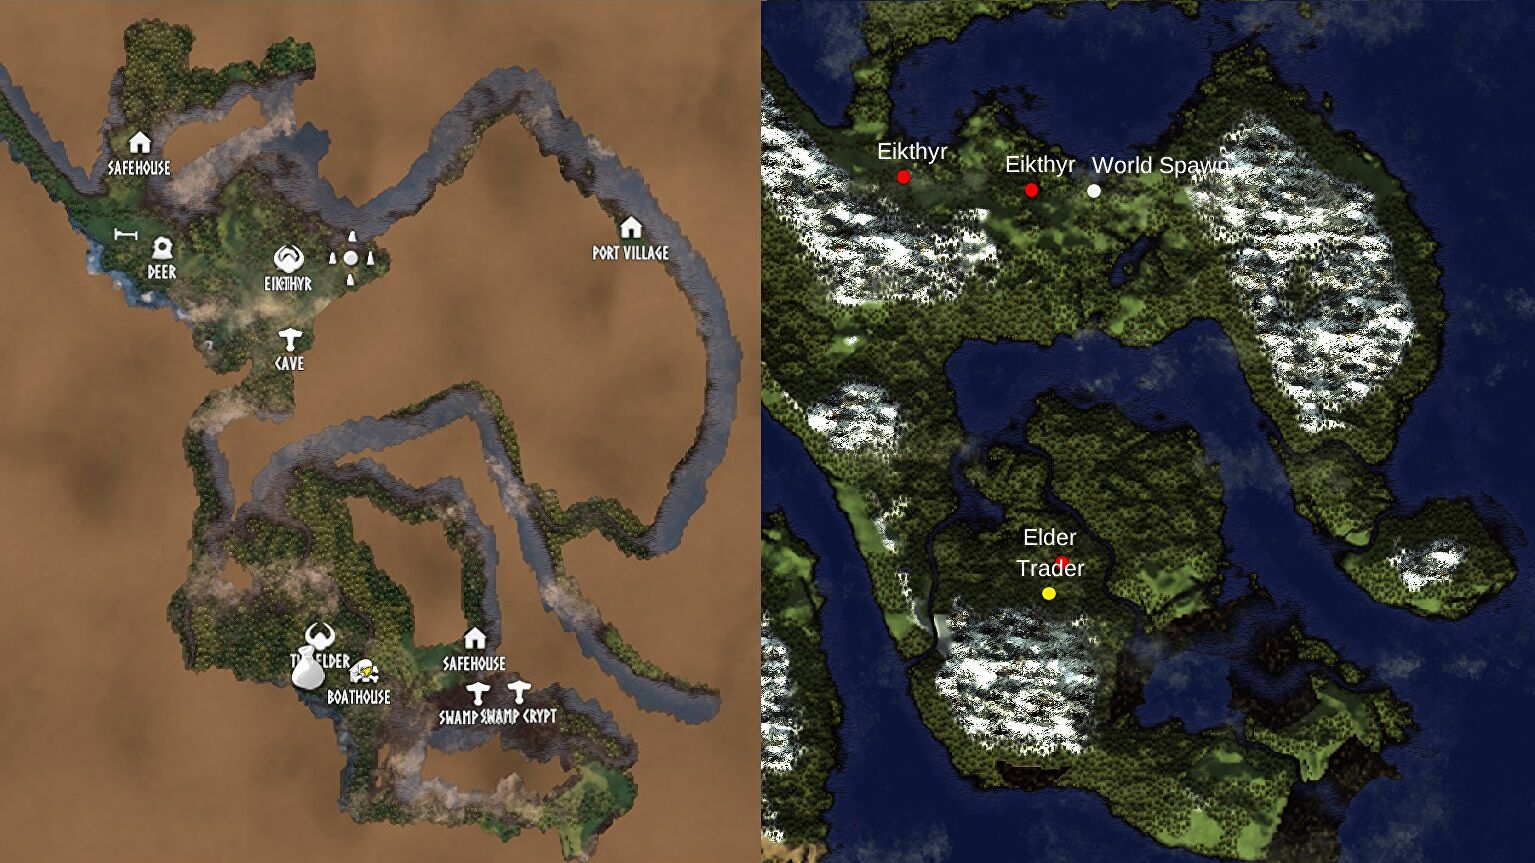 This Valheim world generator is super handy for sleuthing good seeds